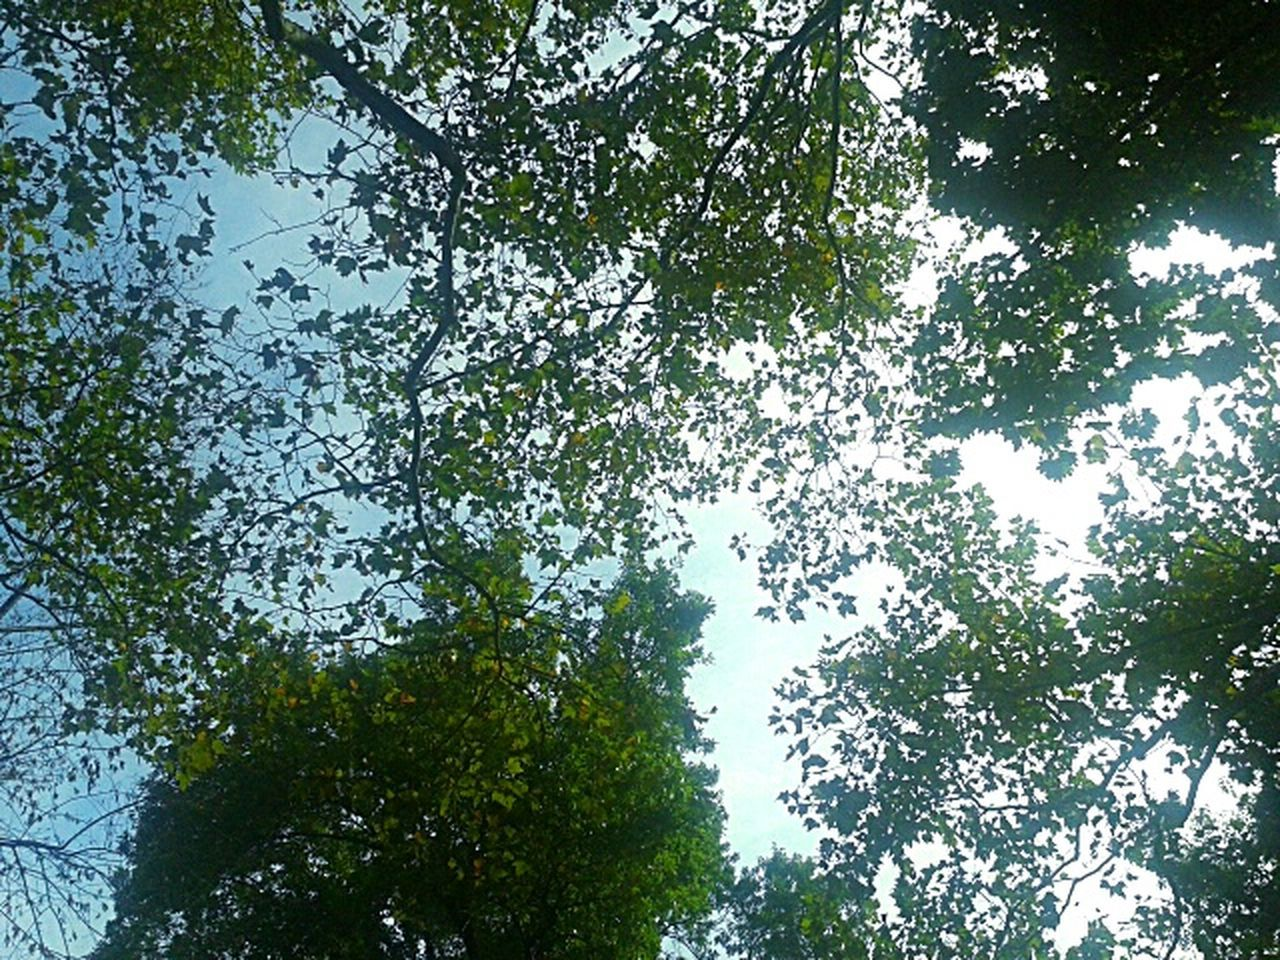 tree, low angle view, nature, growth, beauty in nature, forest, branch, outdoors, green color, no people, day, sky, leaf, scenics, backgrounds, tree area, freshness